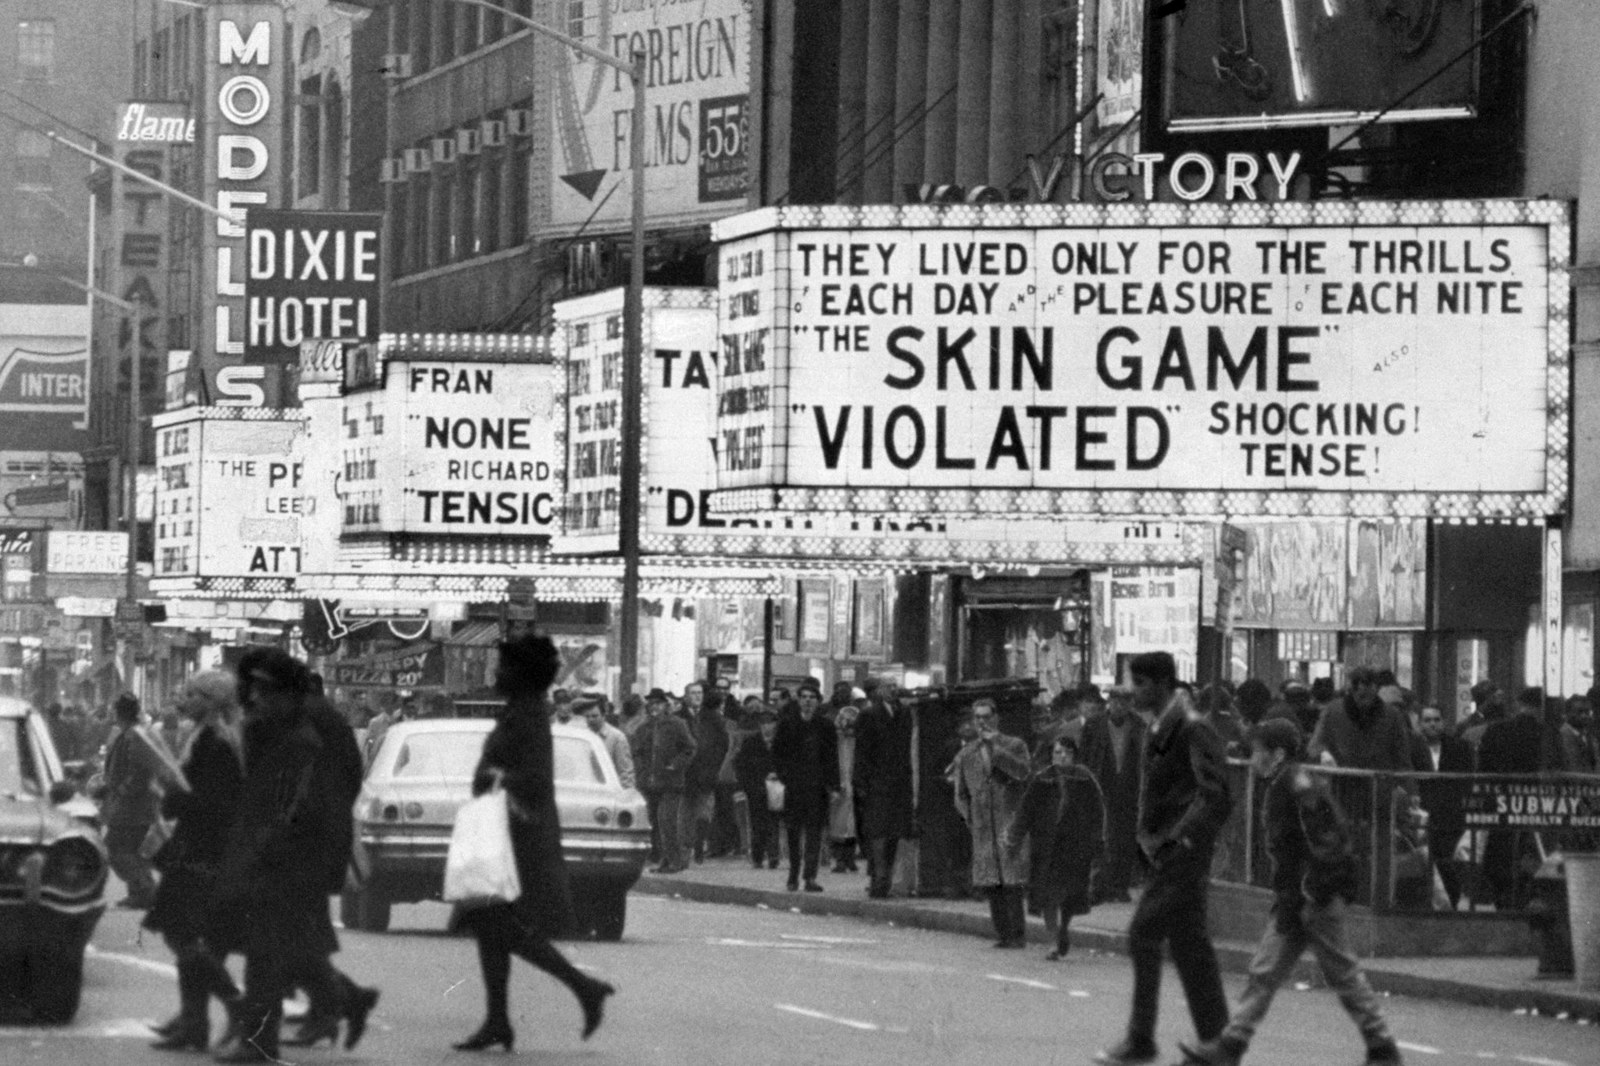 Theater marquees featuring sex shows in Times Square, New York, in 1967.